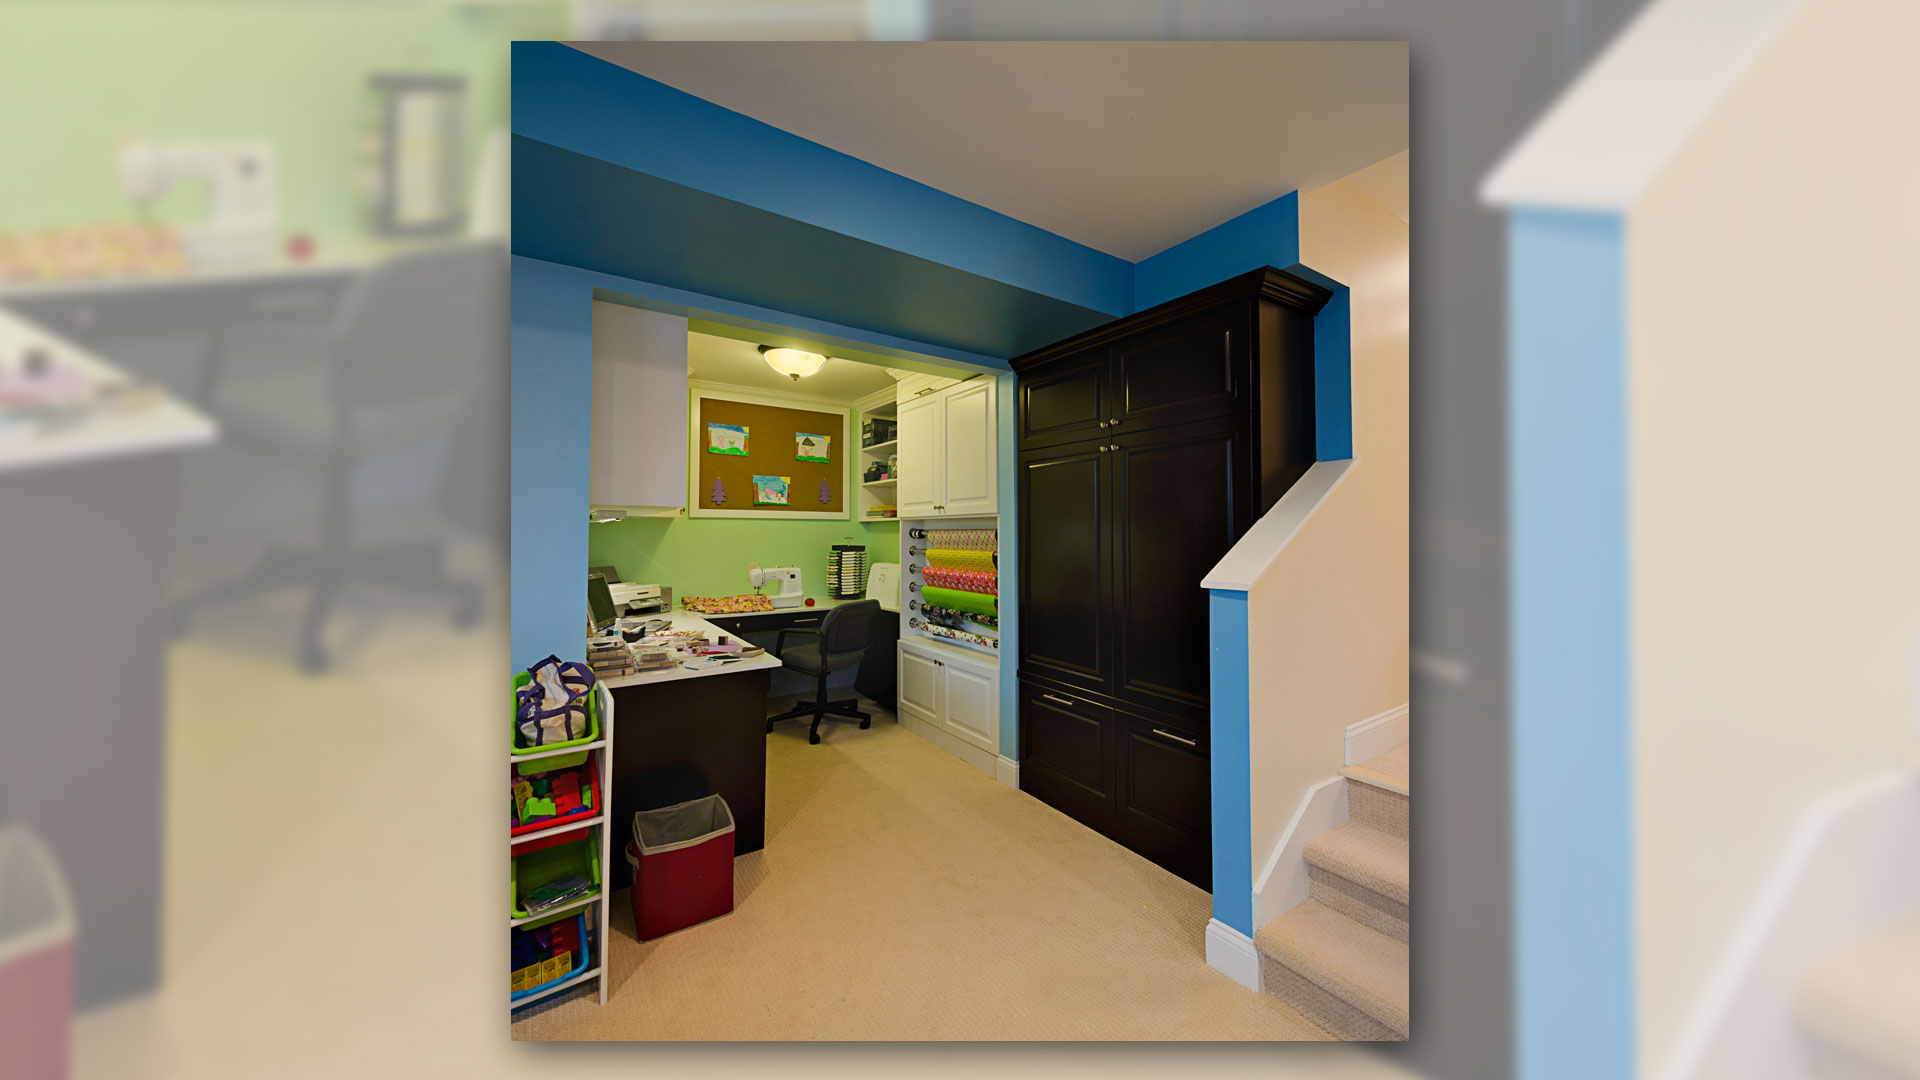 Craft Room with Built-in Cabinets - Sheridan Interiors, sheridan interiors kitchens and baths, interior designer cornwall, interior designer ottawa